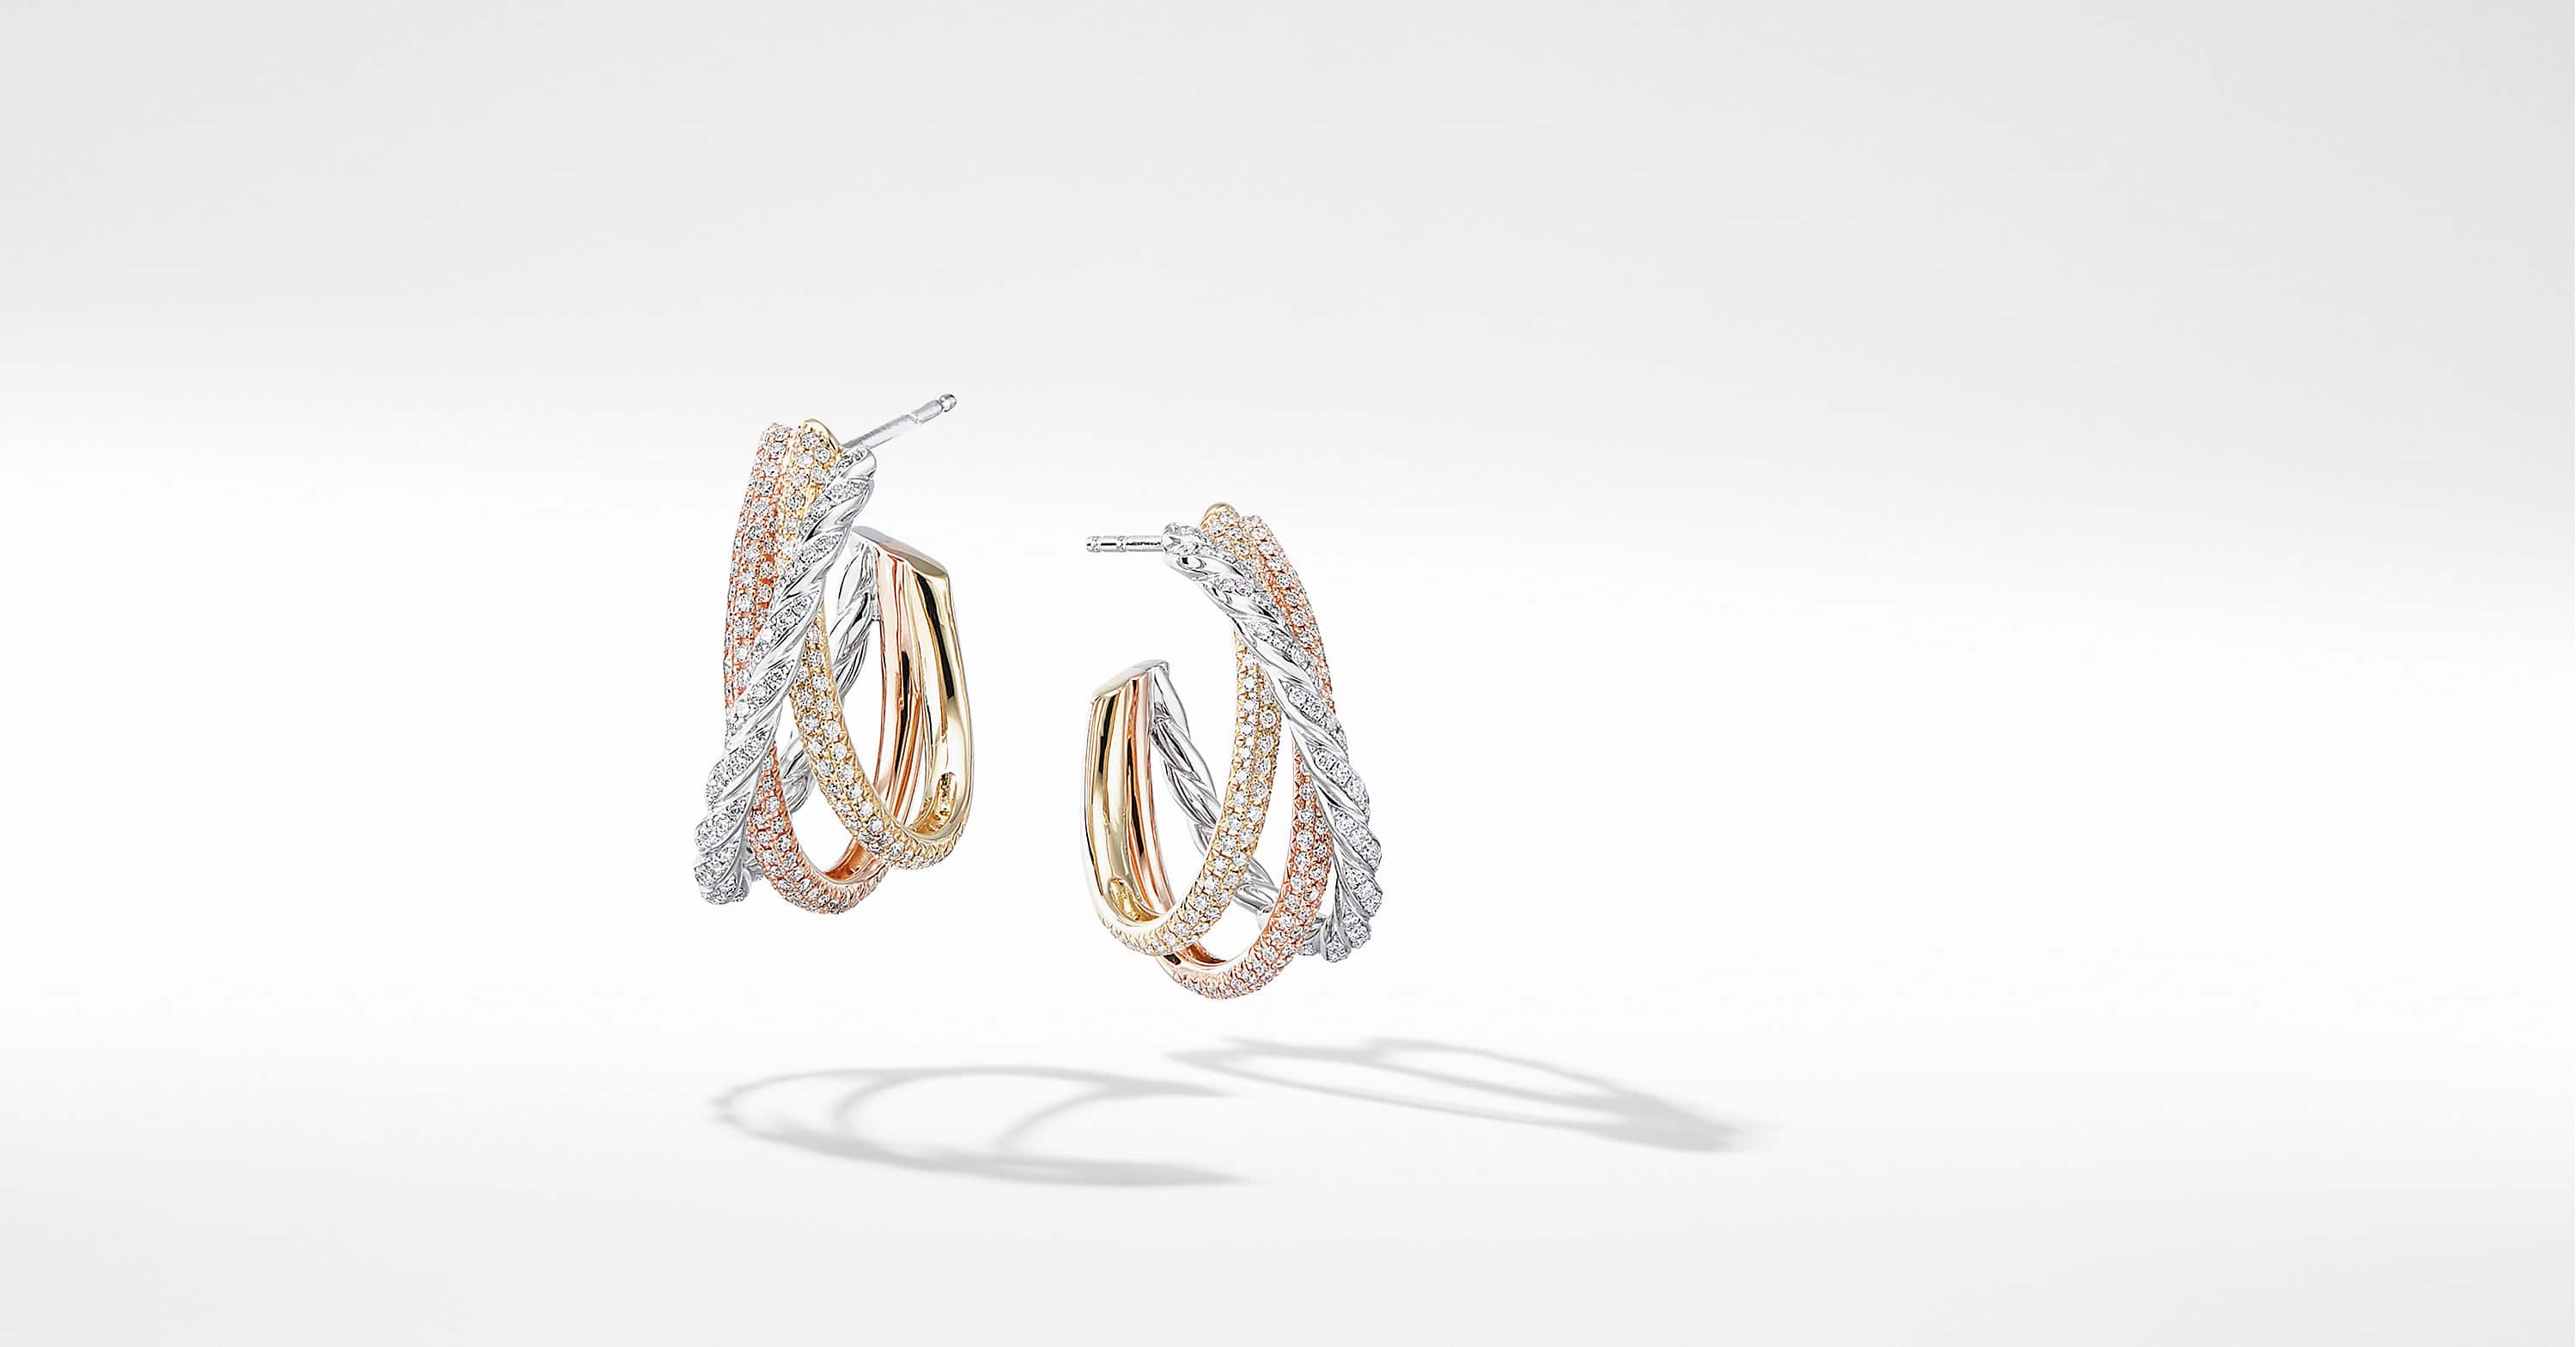 Pavéflex Shrimp Earrings  in 18K Gold with Diamonds